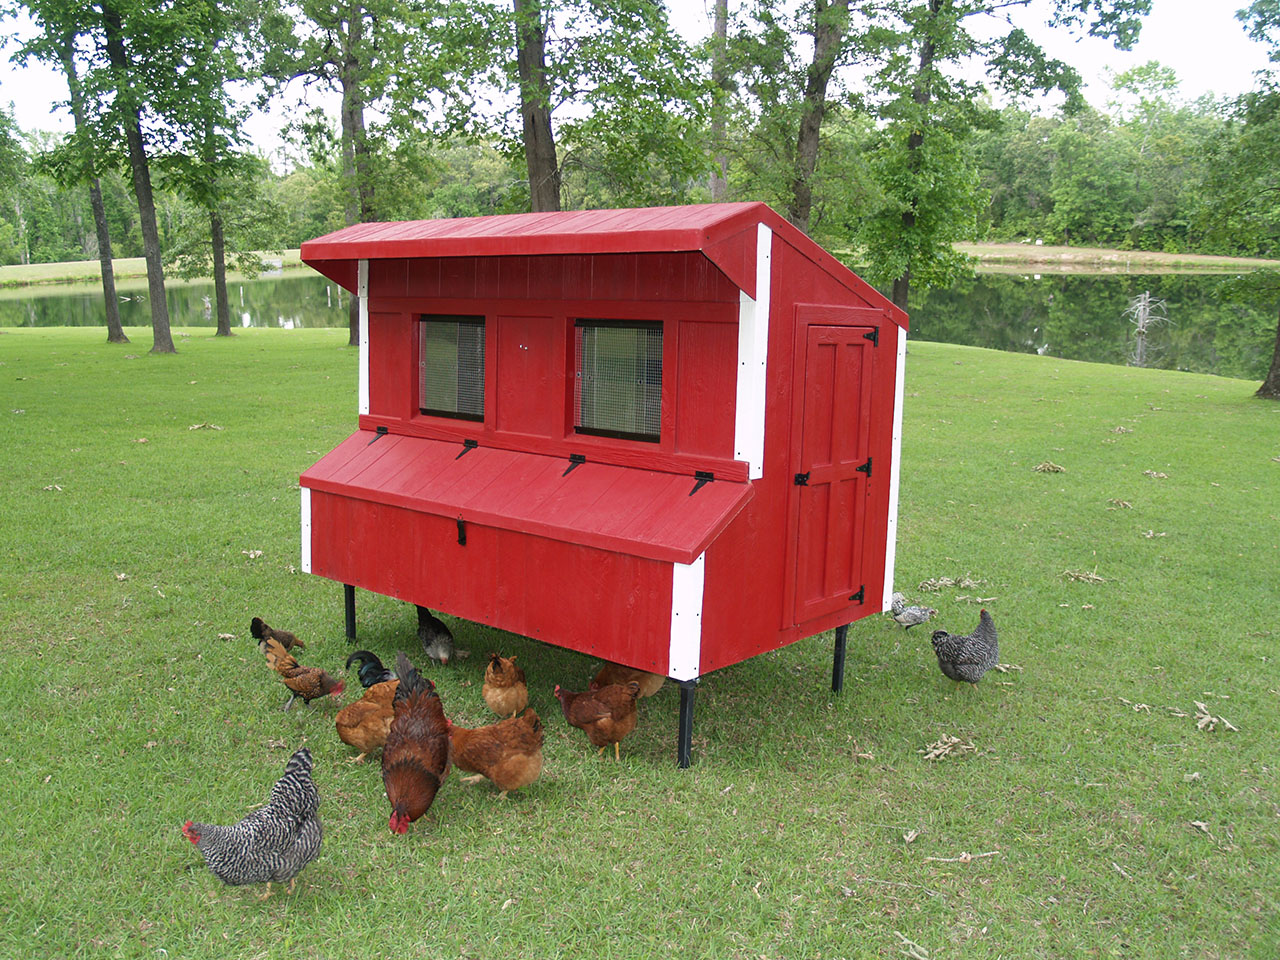 Eggstreme chicken coops 8 39 x 5 39 traditional fiberglass for Chicken coop for 8 10 chickens